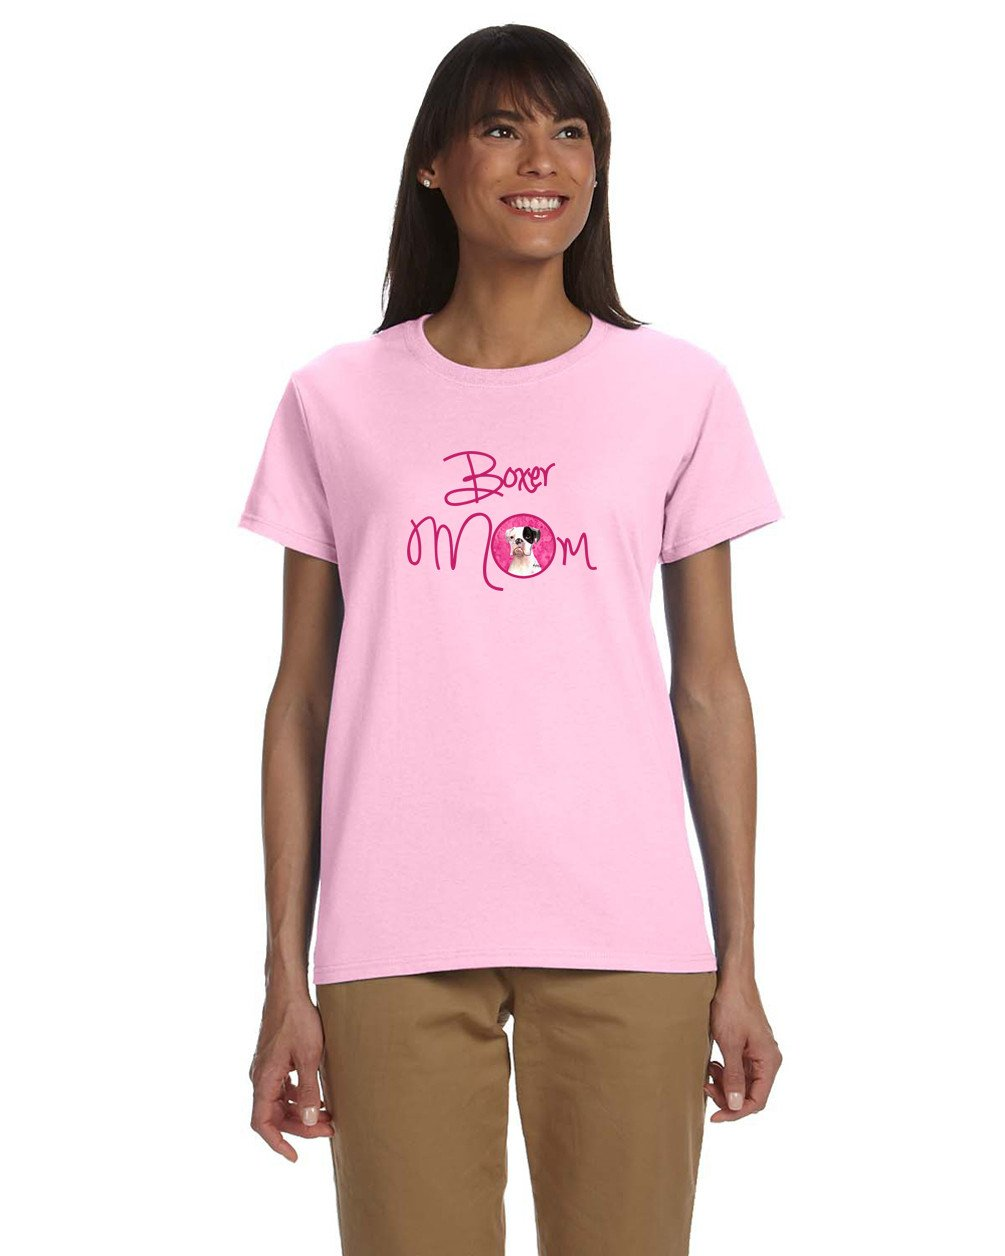 Pink Cooper the Boxer Mom T-shirt Ladies Cut Short Sleeve Large RDR3019PK-978-L by Caroline's Treasures